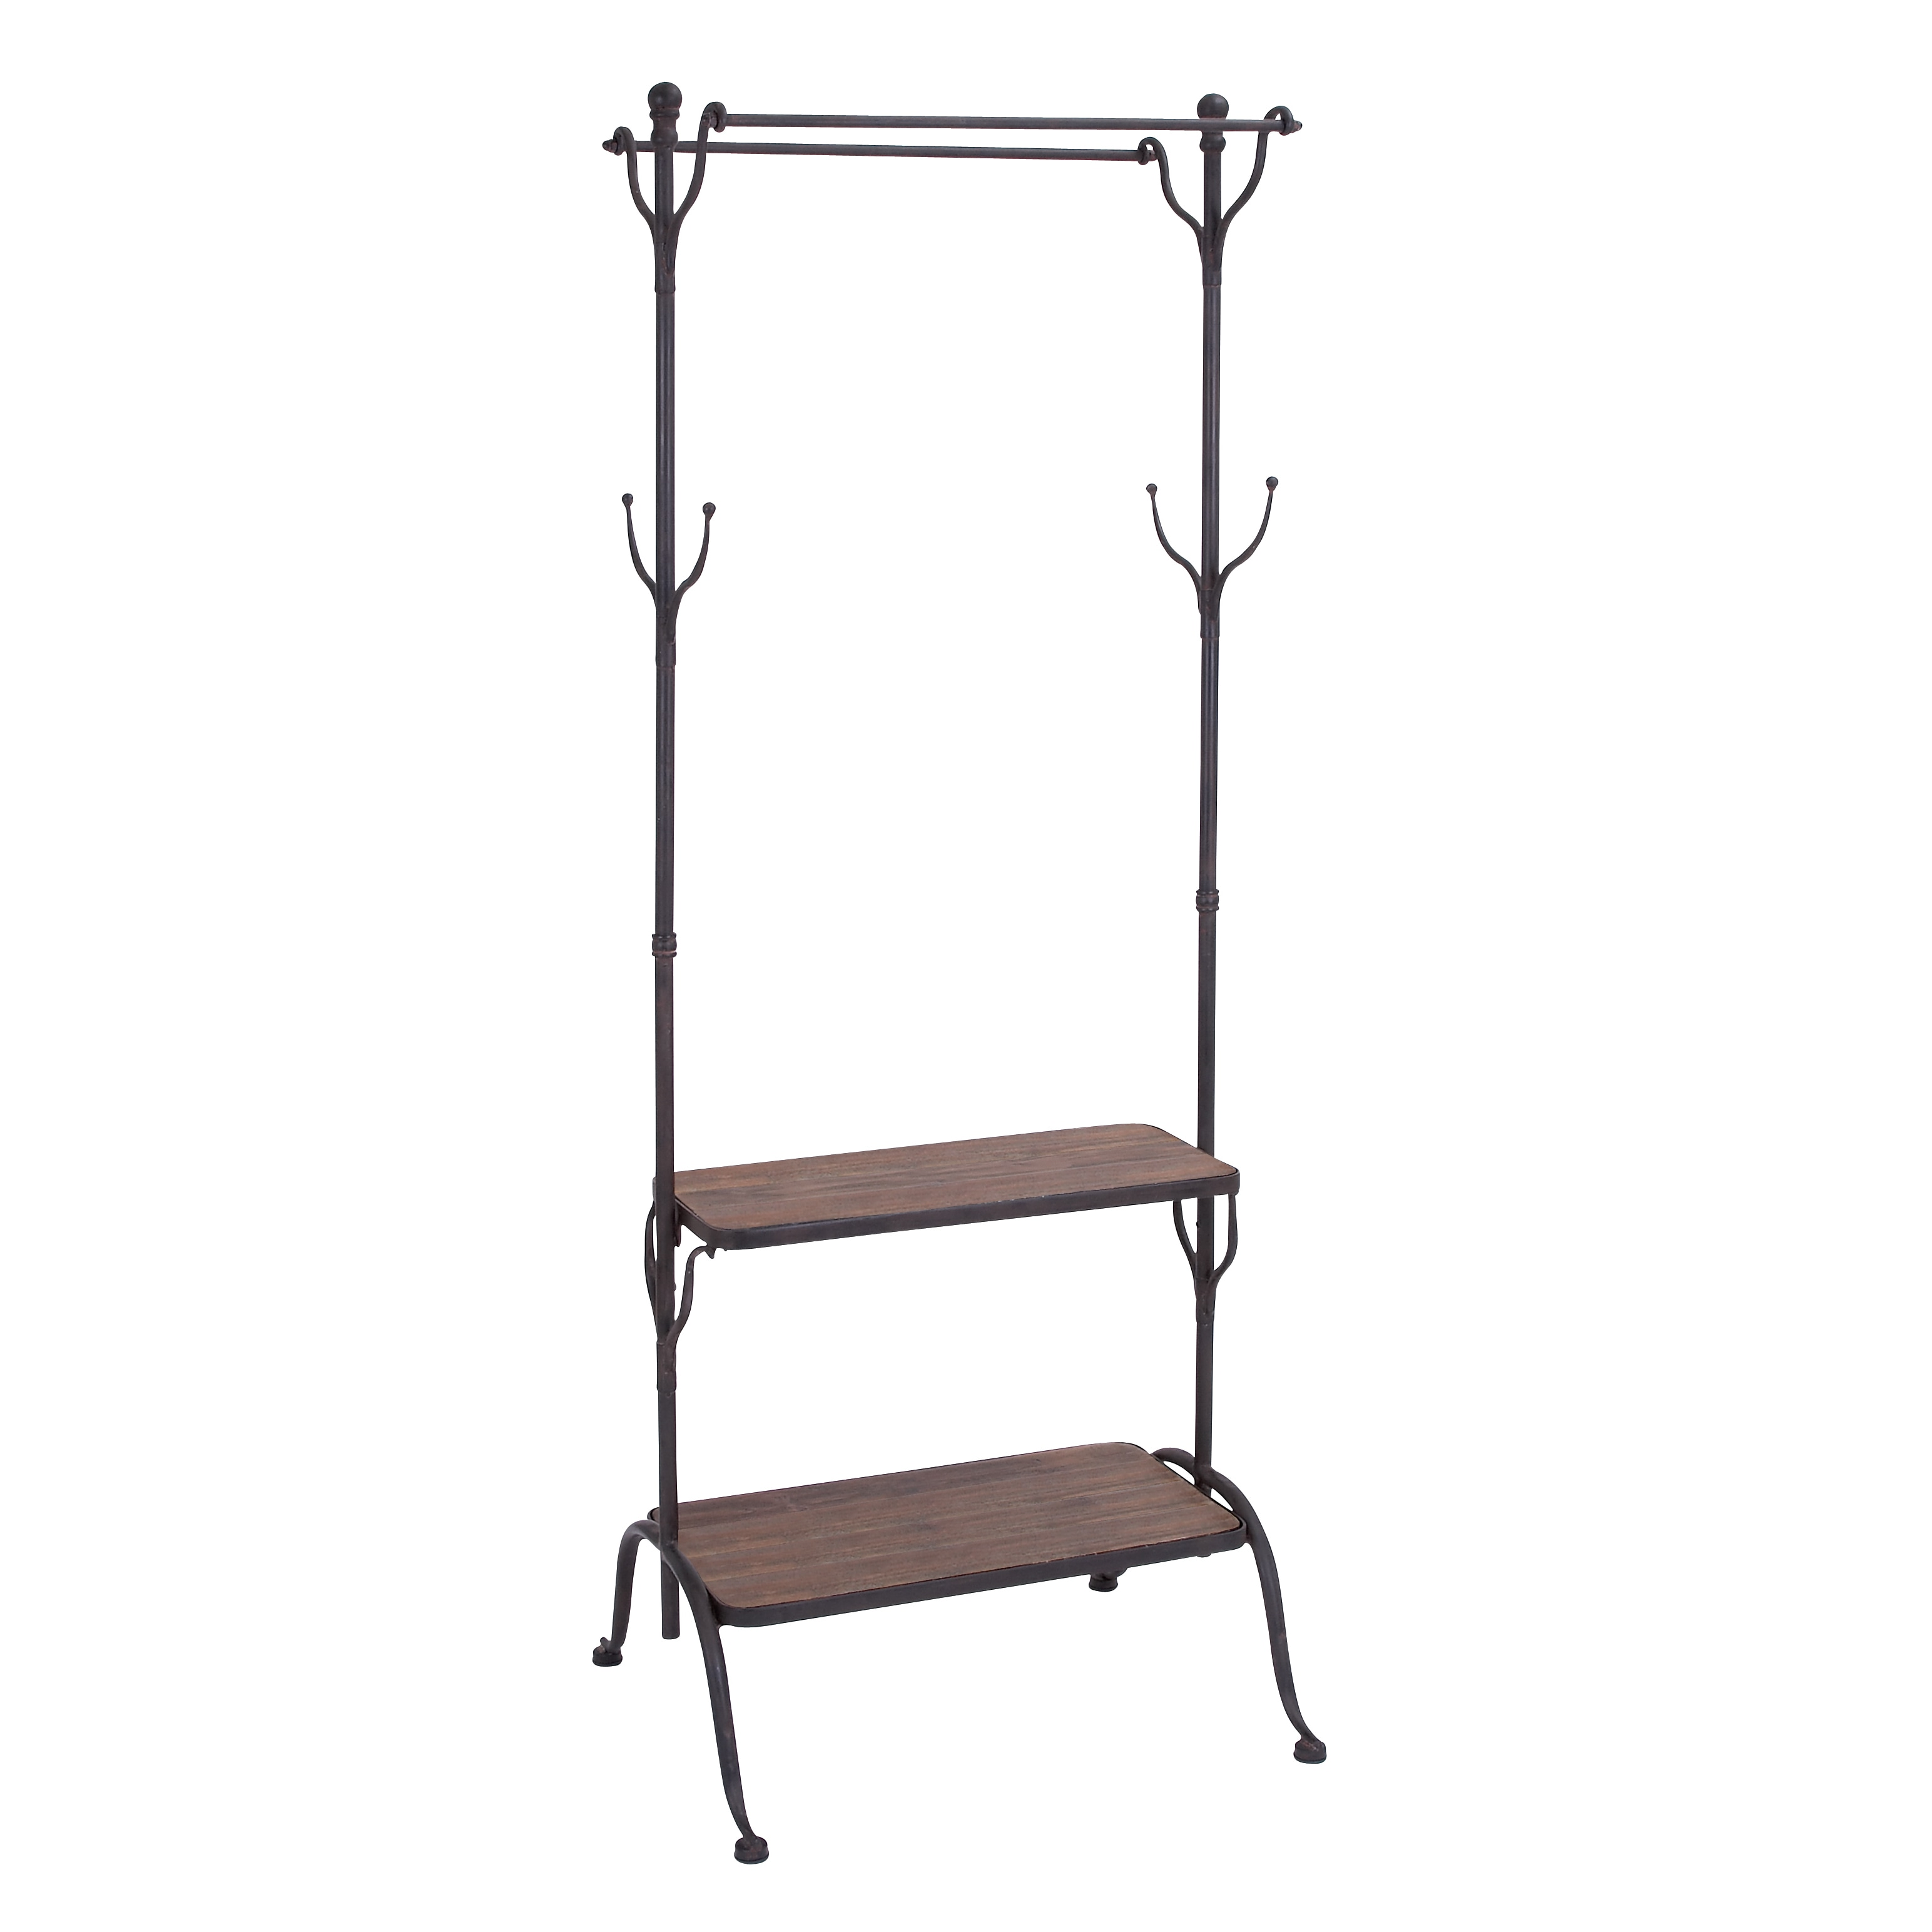 hanger co ikea ideas pcok metal clothes images endearing amys design rack coat office stand lummy